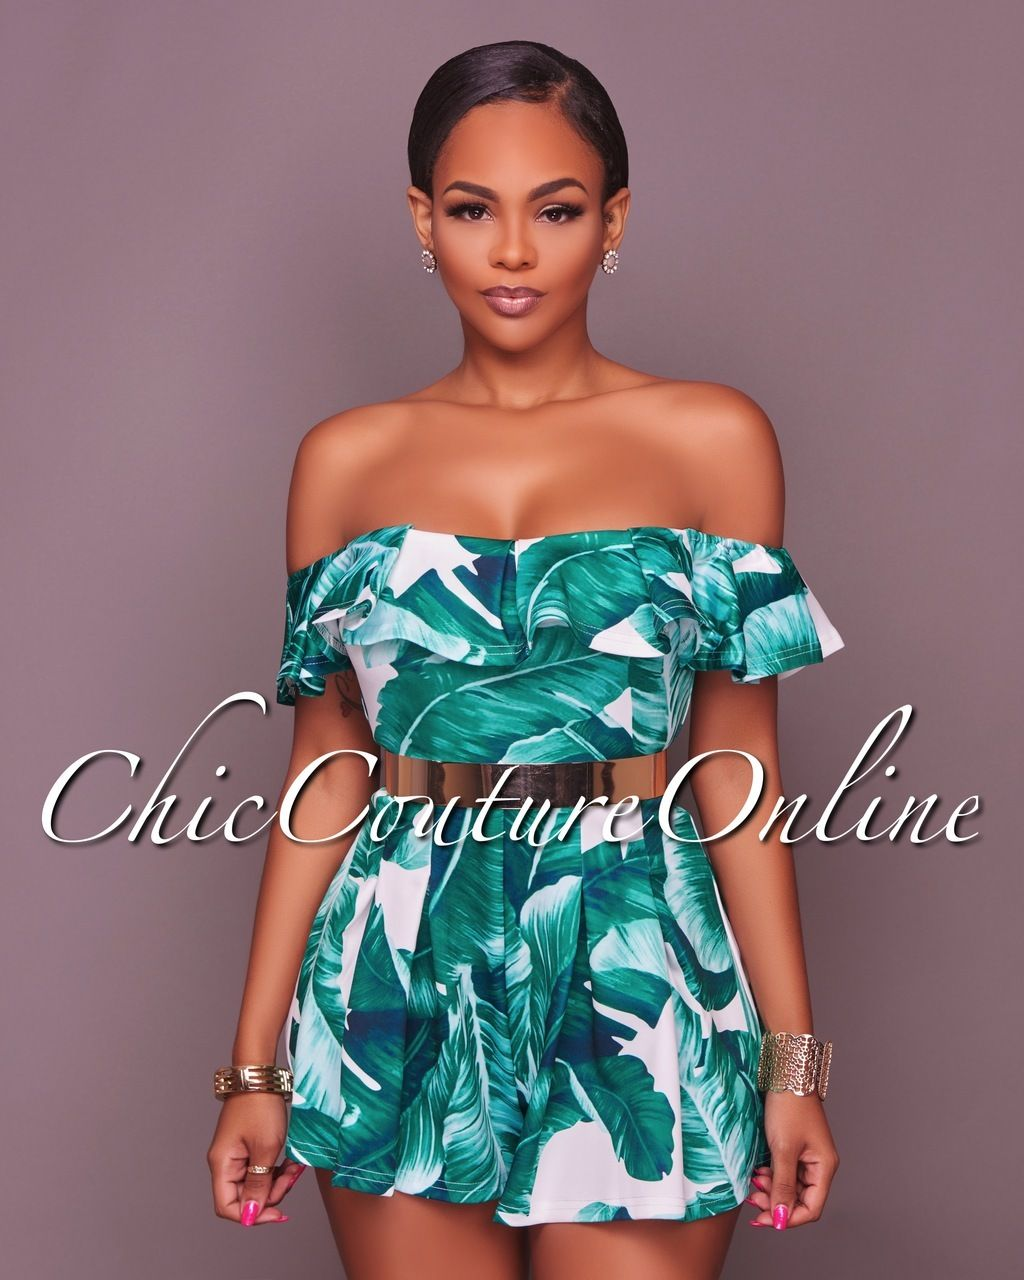 d7c4d5039fdb Chic Couture Online - Katalina White Green Leaf Print Off The Shoulder  Romper